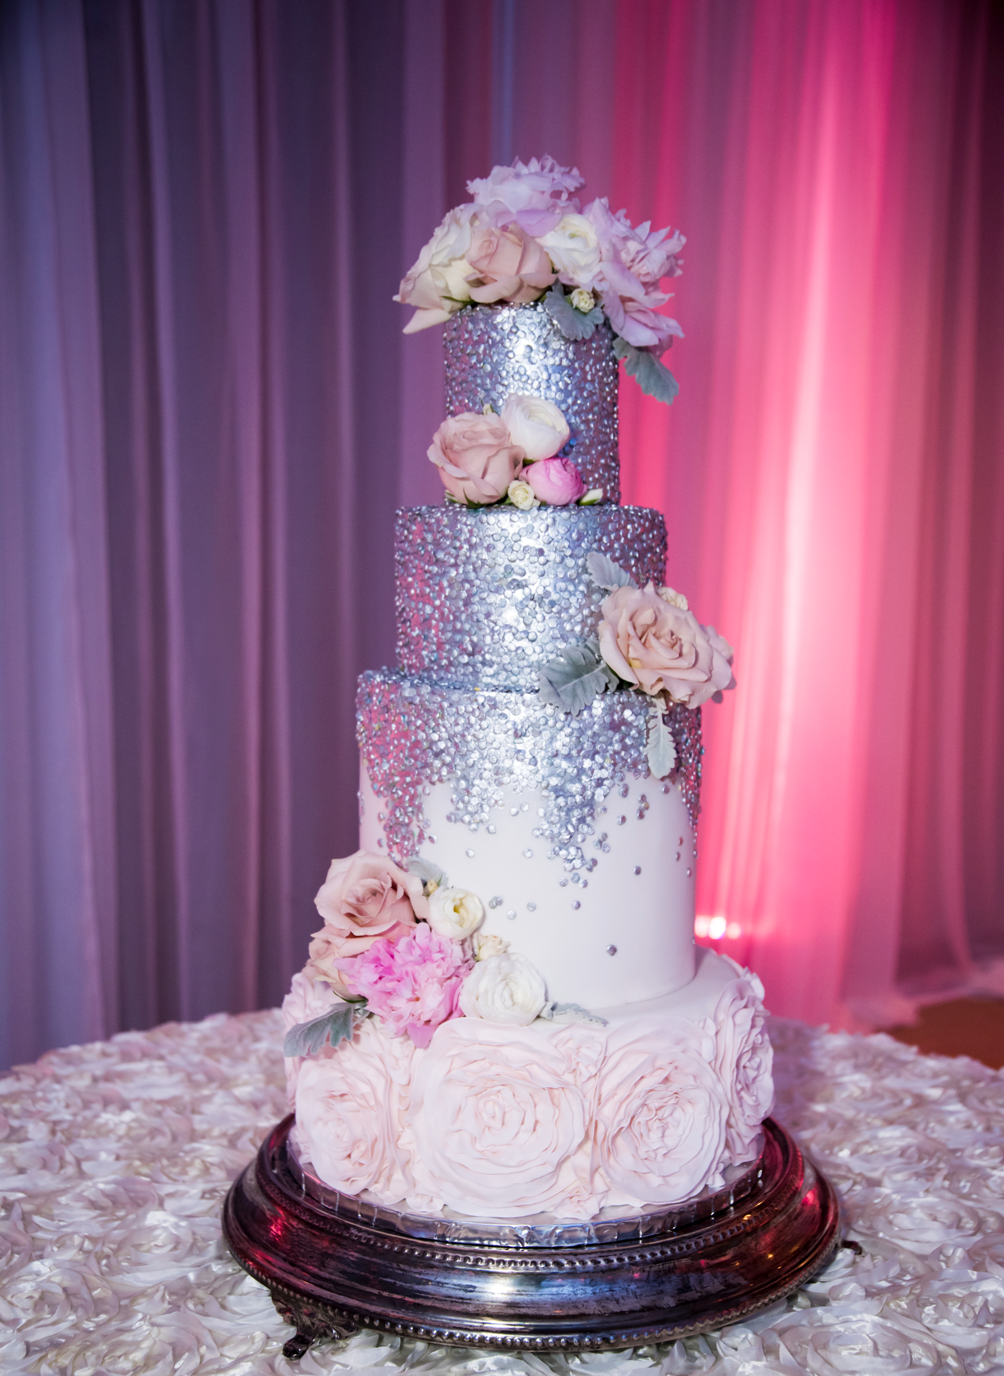 Whippt Desserts & Catering - wedding cake